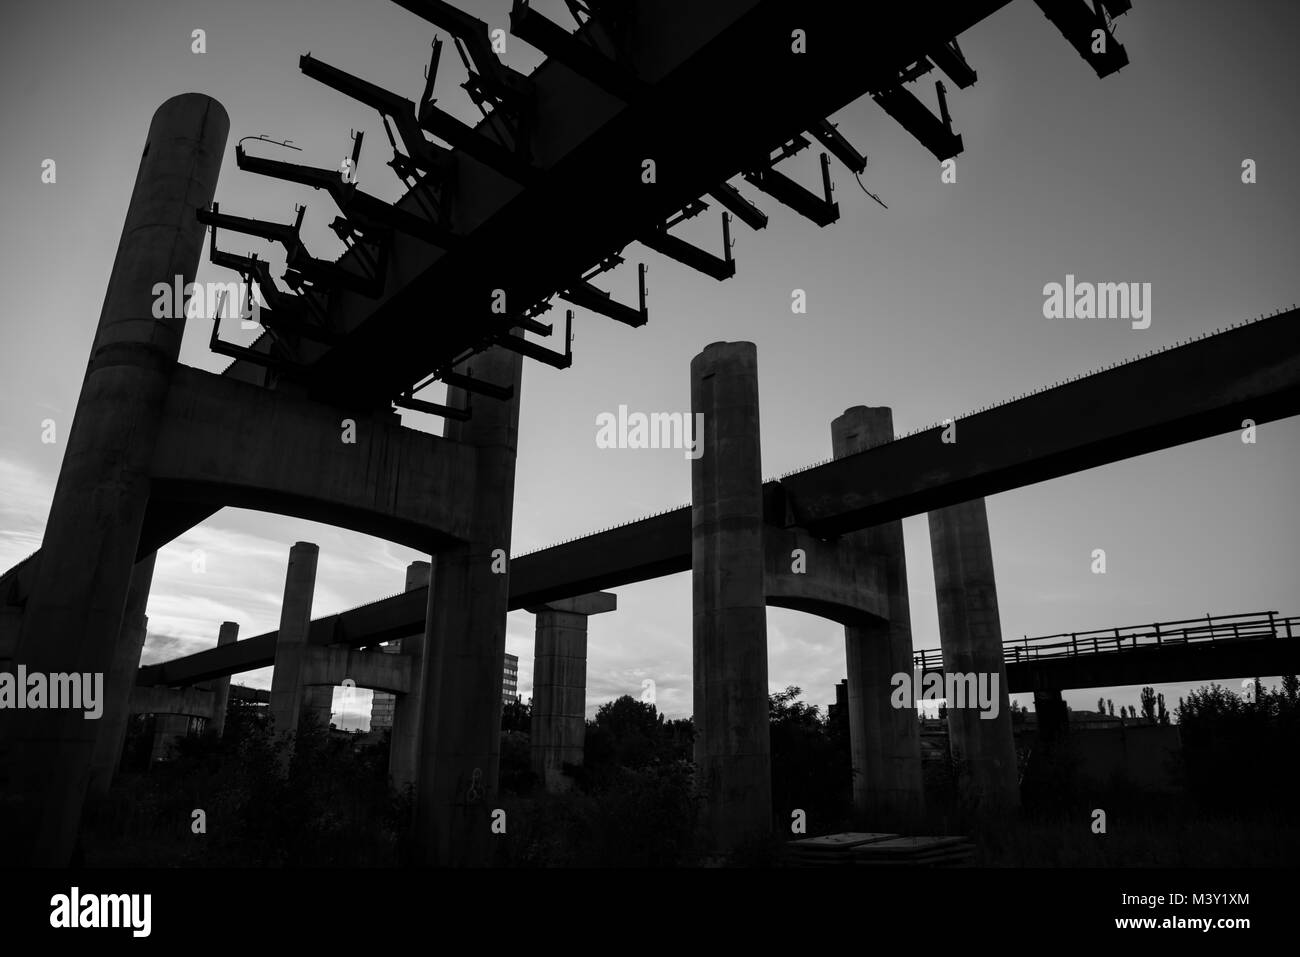 Unfinished bridge, building, clear sky architecture silhoette - Stock Image